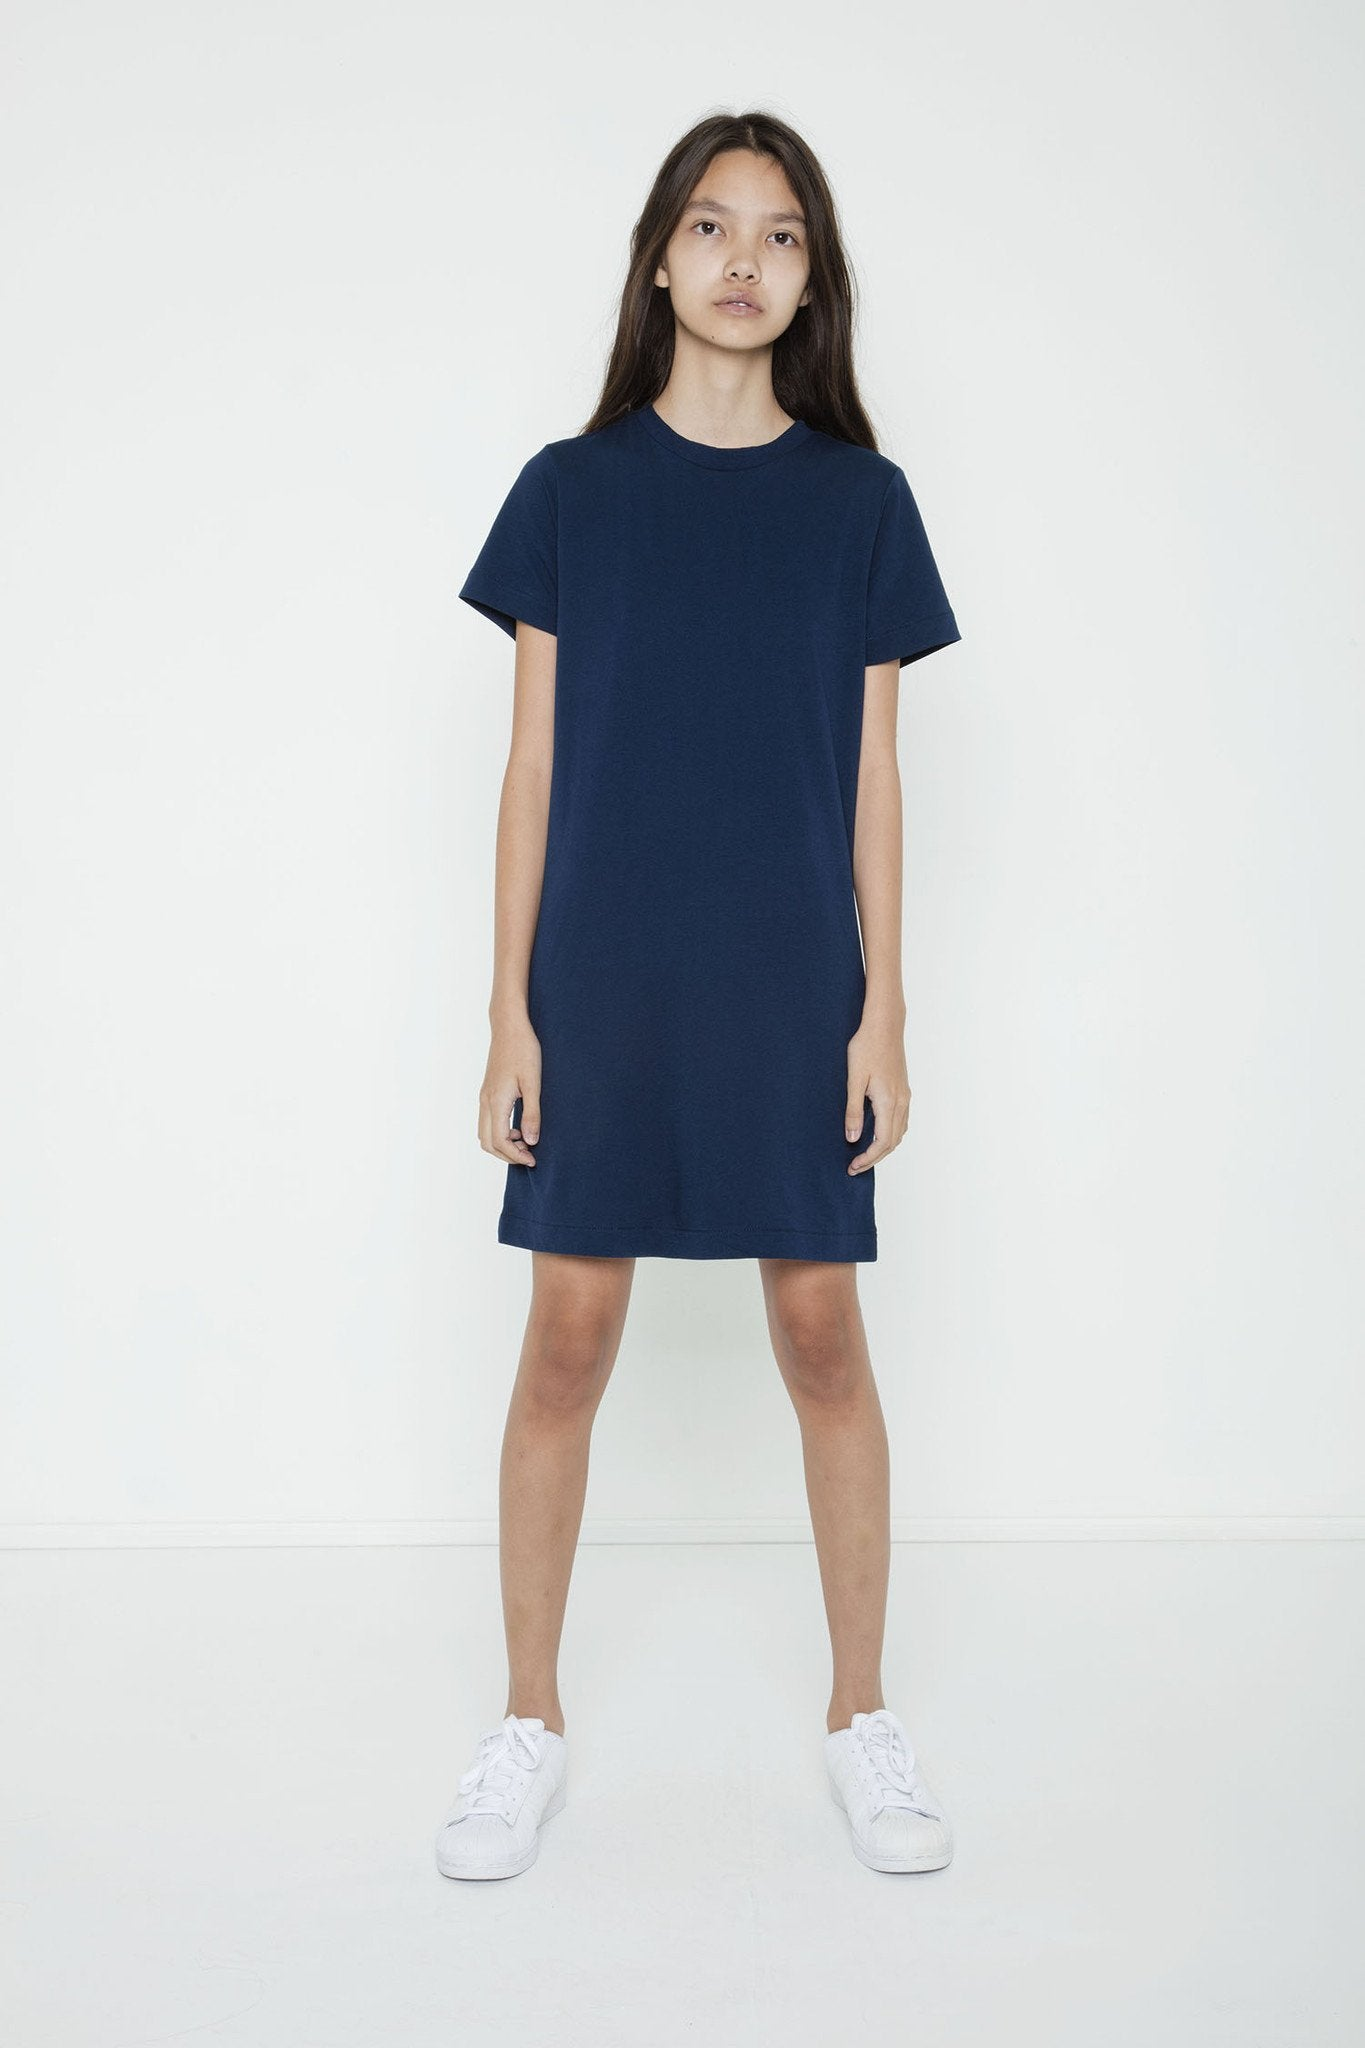 Blank Canvas T Shirt Dress - LoveSylvester